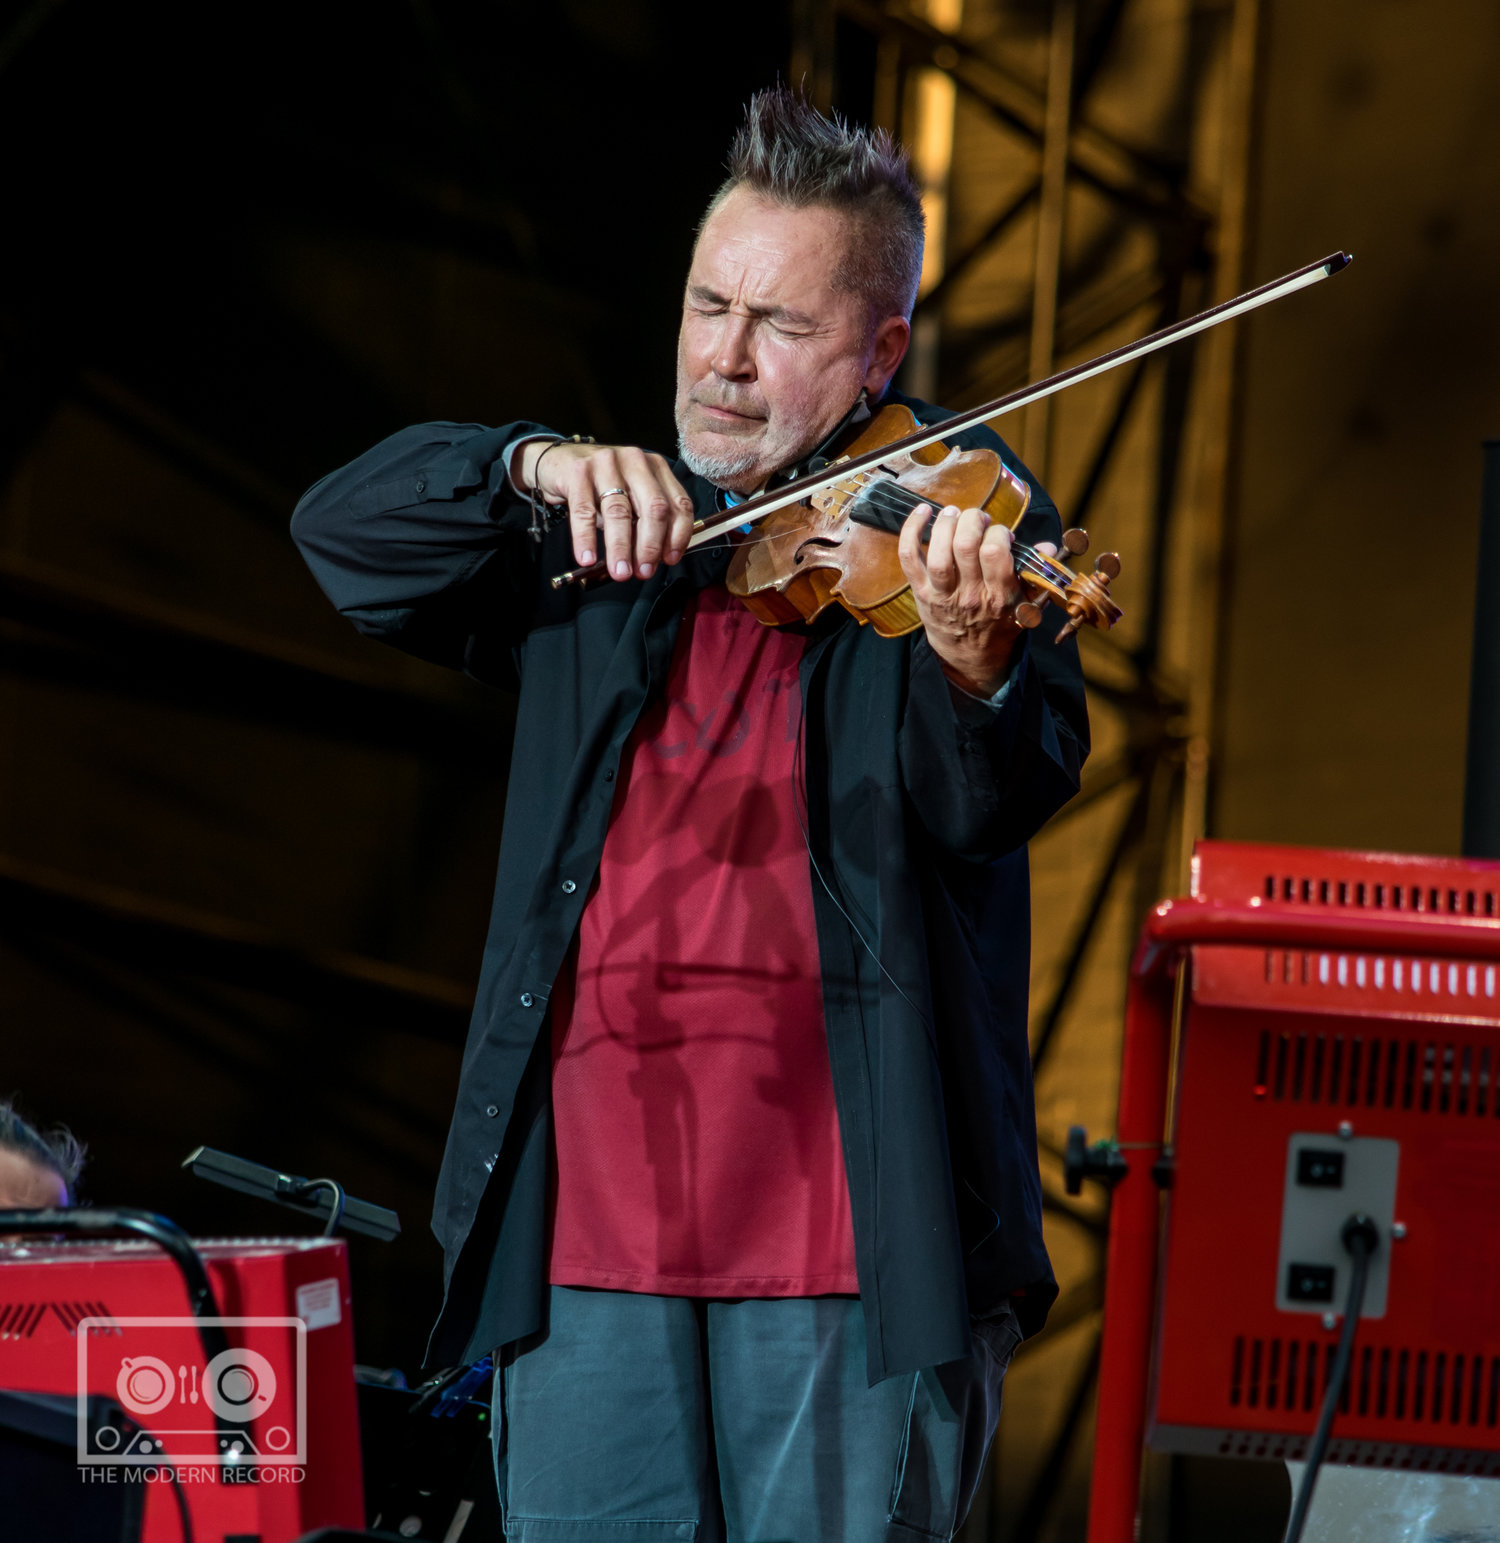 NIGEL KENNEDY CLOSING FIRST DAY AT BBC BIGGEST WEEKEND IN PERTH - 25.05.2018  PICTURE BY: STEPHEN WILSON PHOTOGRAPHY